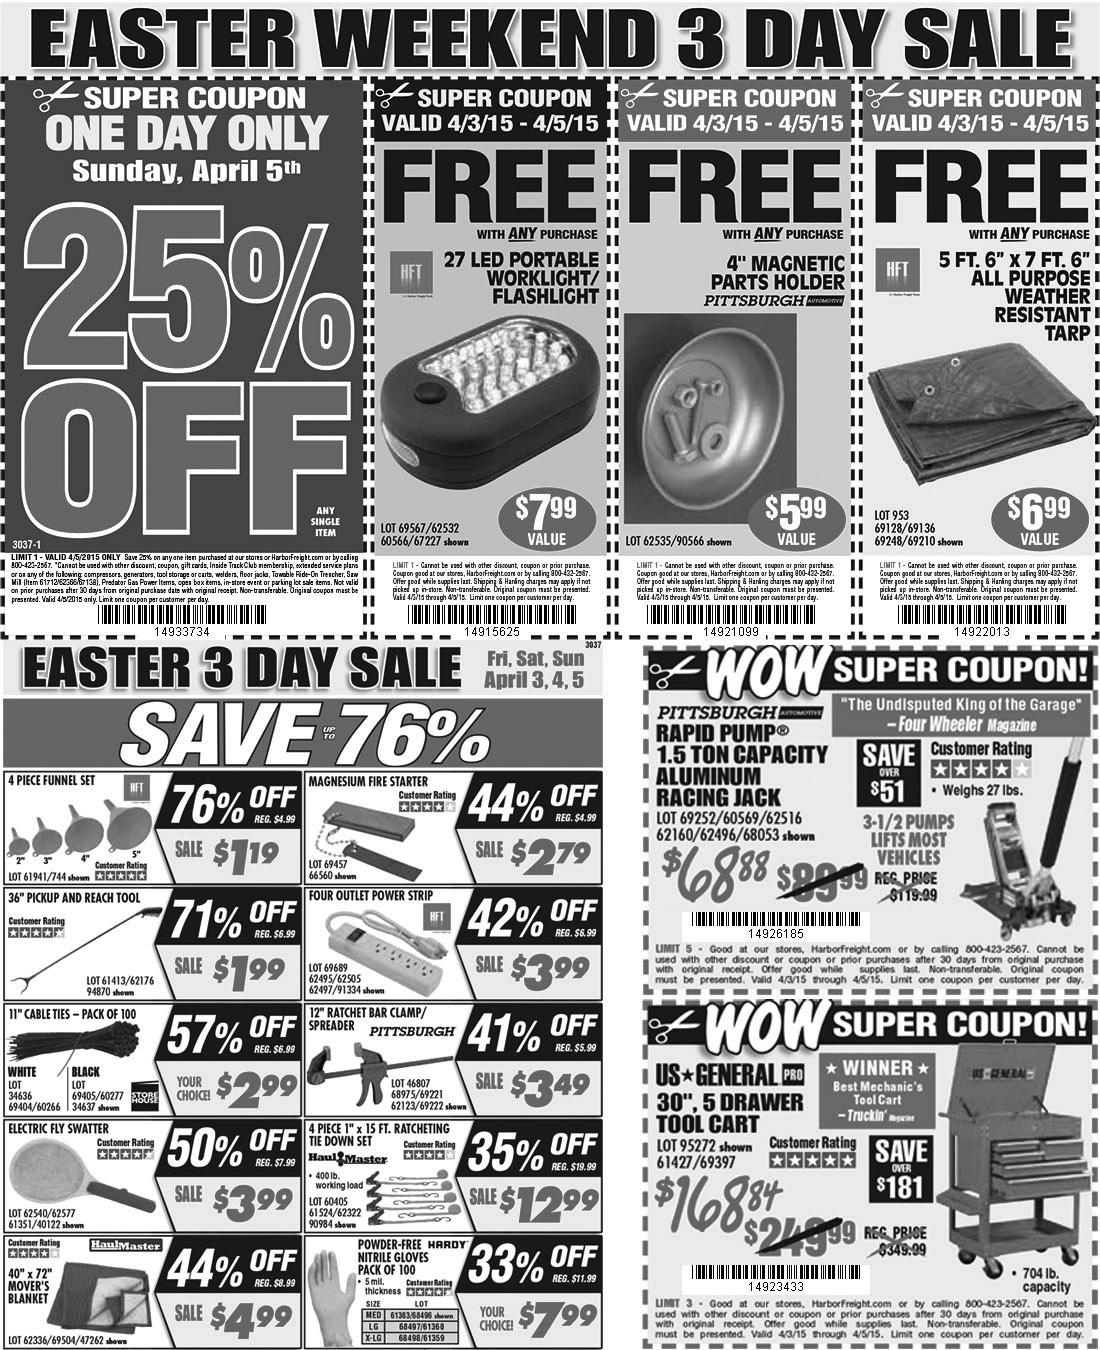 Harbor Freight Coupon March 2017 25% off a single item & more at Harbor Freight Tools, or online via promo code 14933734